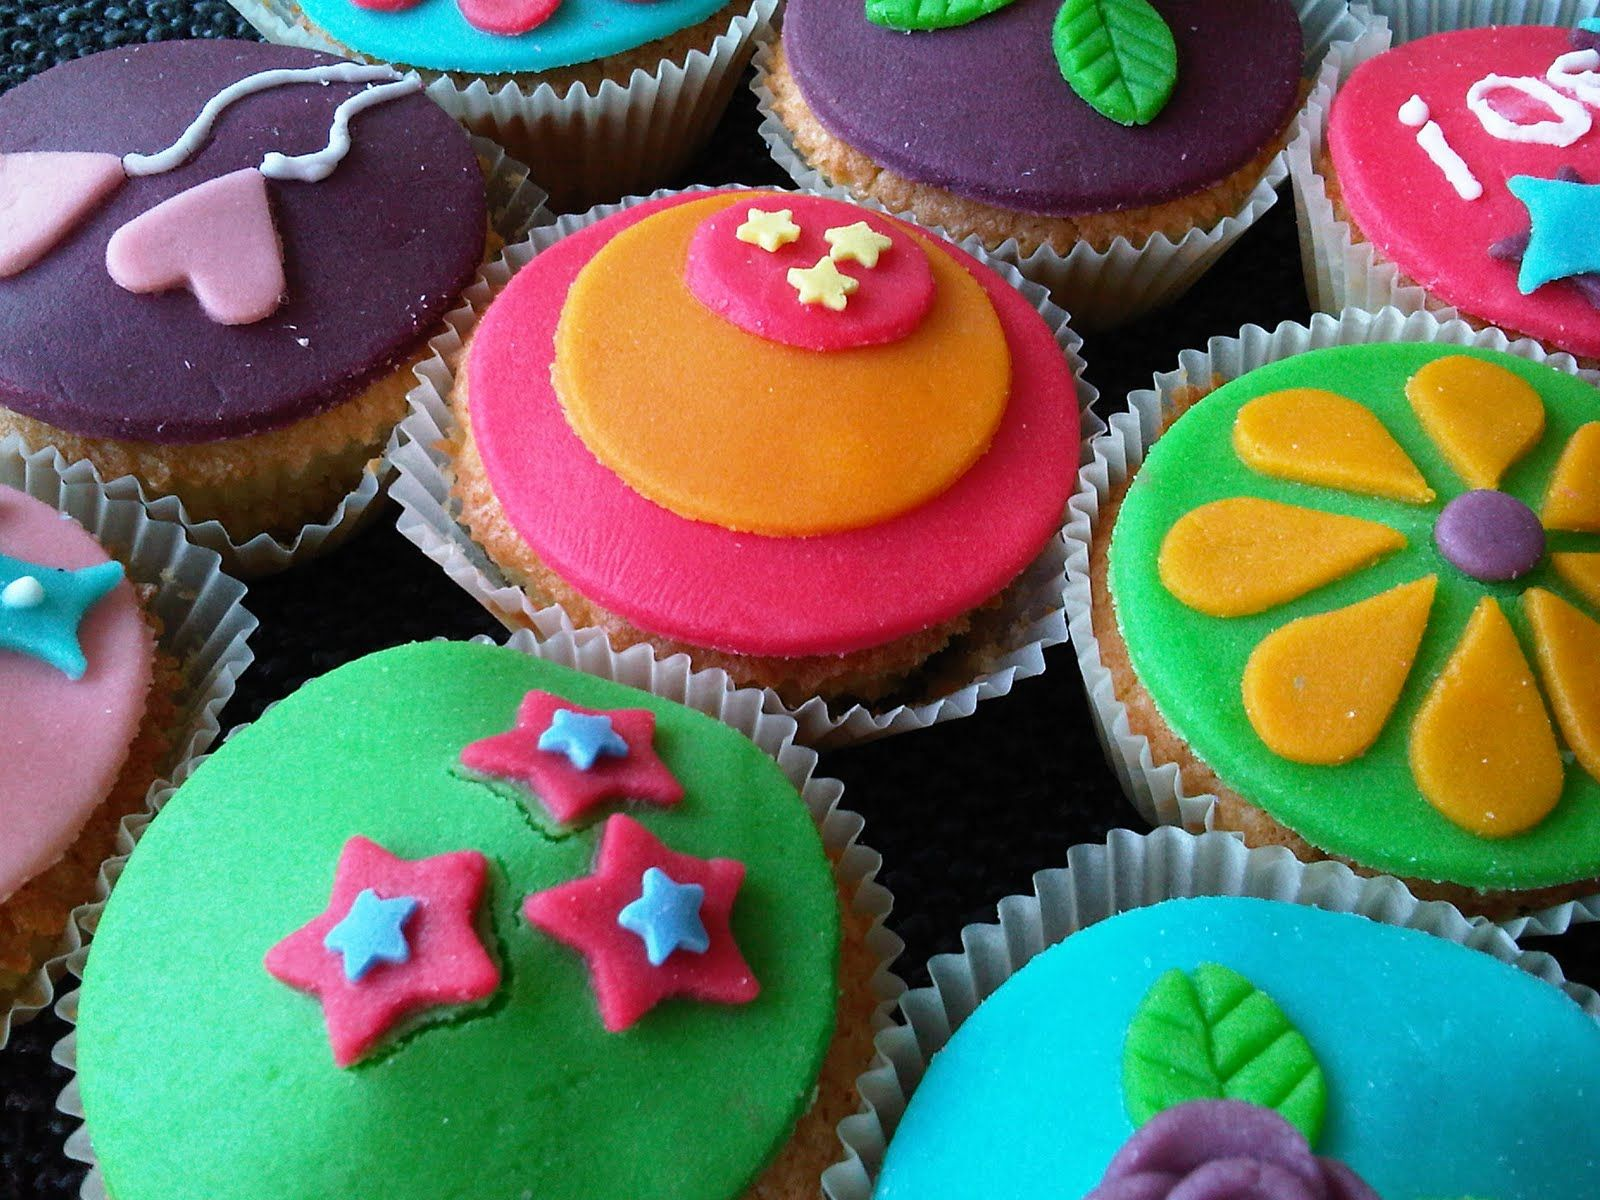 Muffins Decorados Decorating Cupcakes Party Ideas Pinterest Cupcakes Cake And